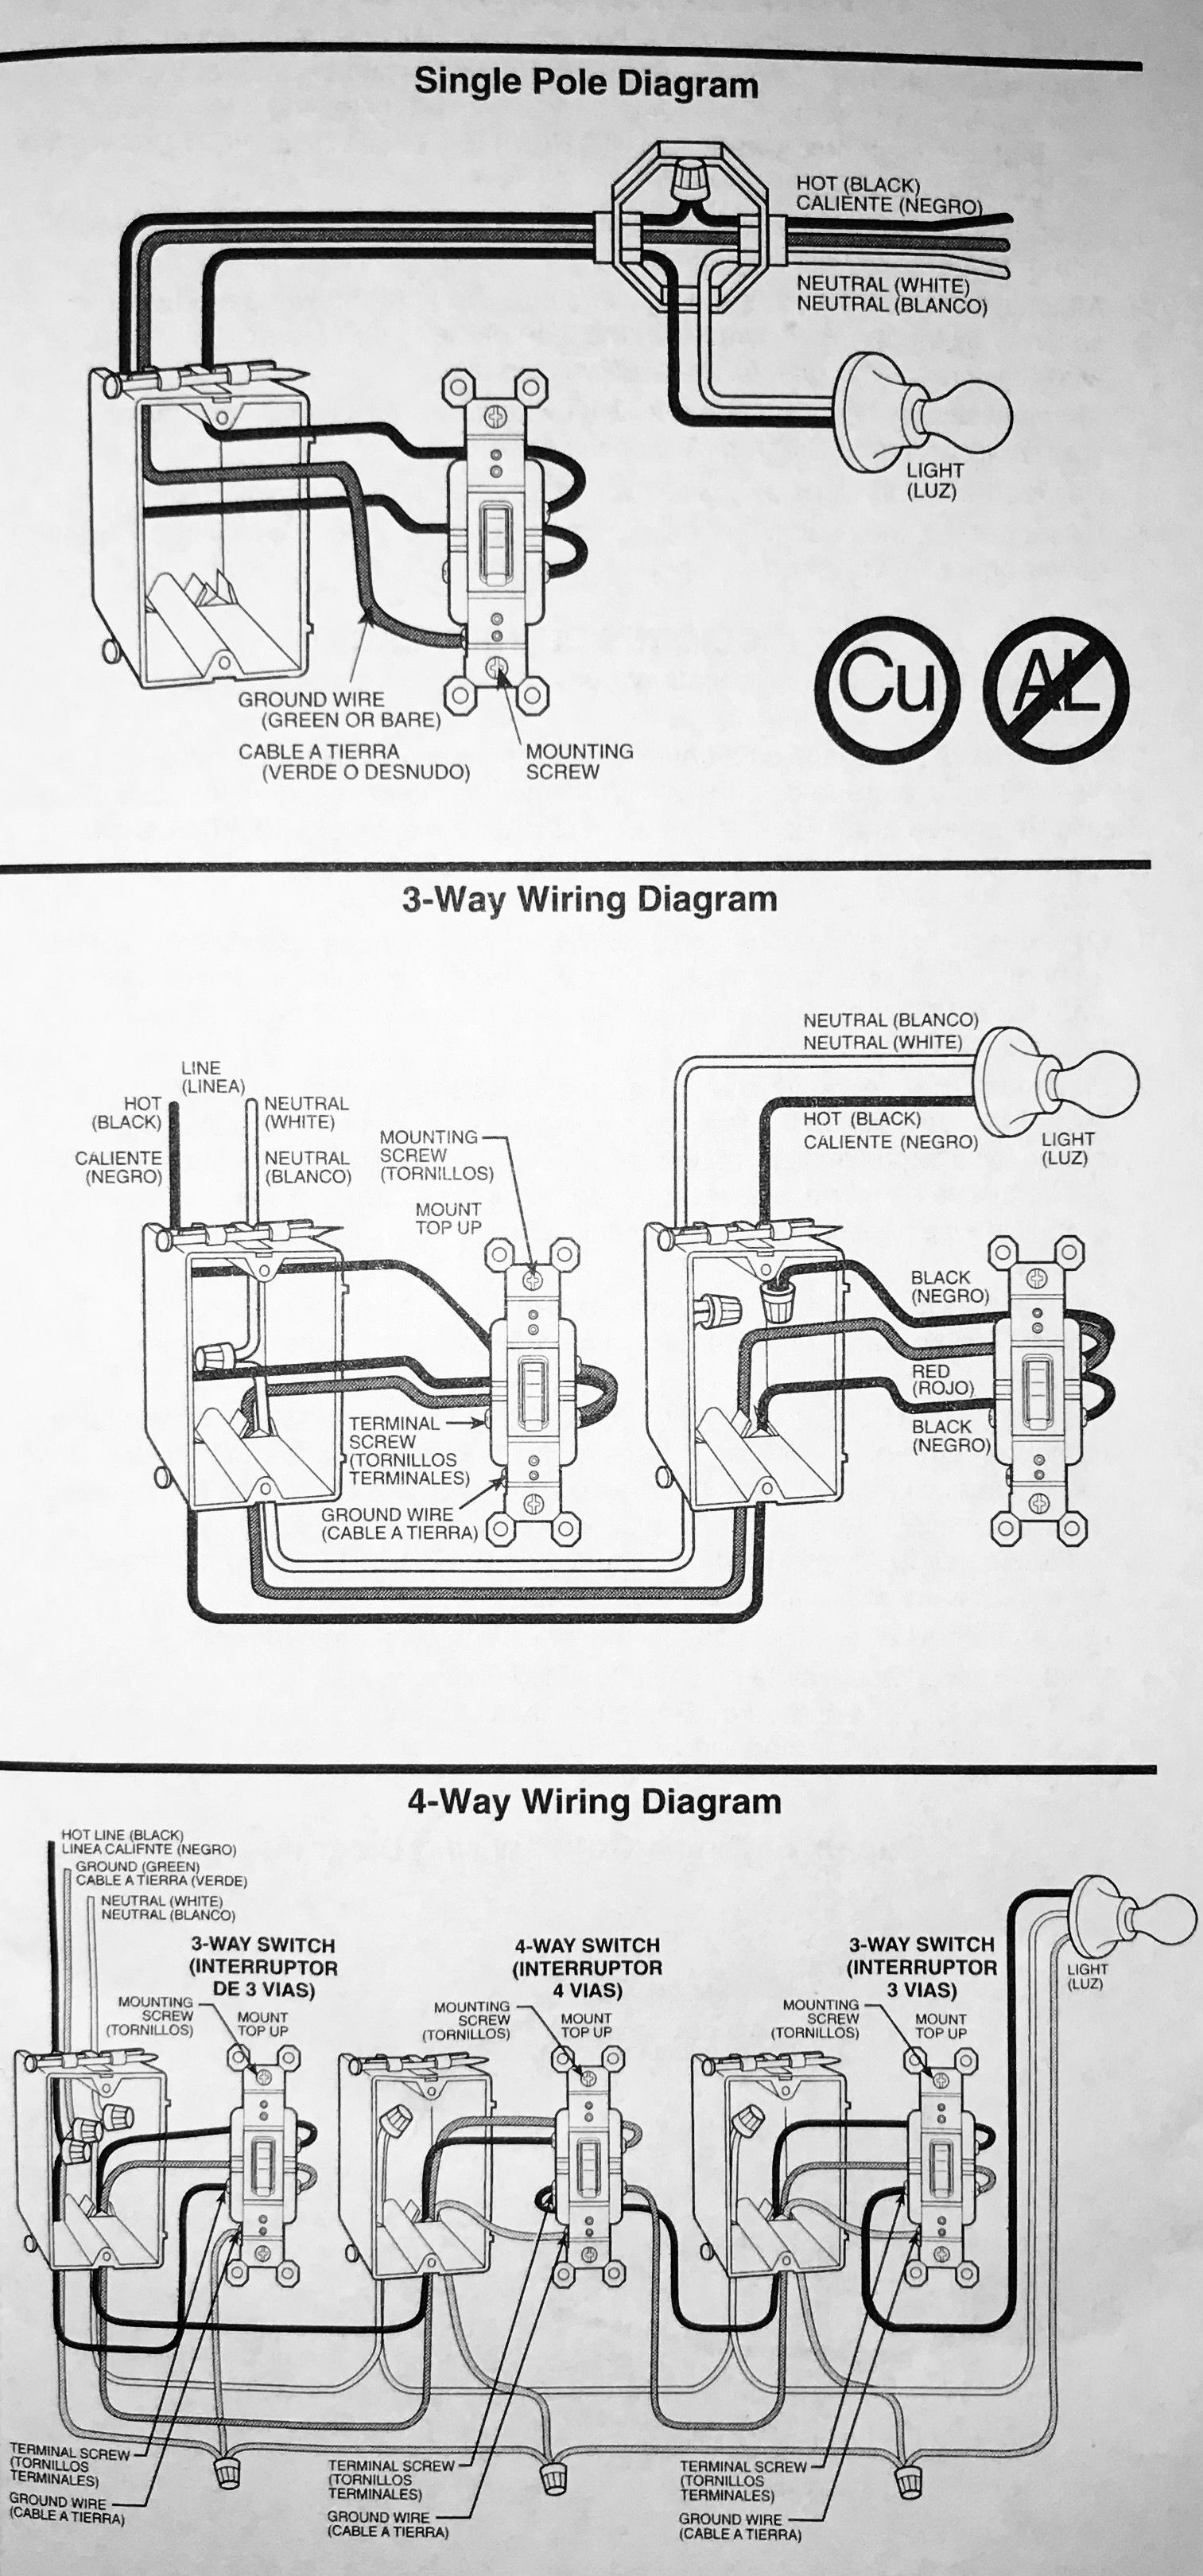 hight resolution of 3 pole wiring diagram wiring diagram imp 3 pole switch wiring diagram 3 pole wire diagram